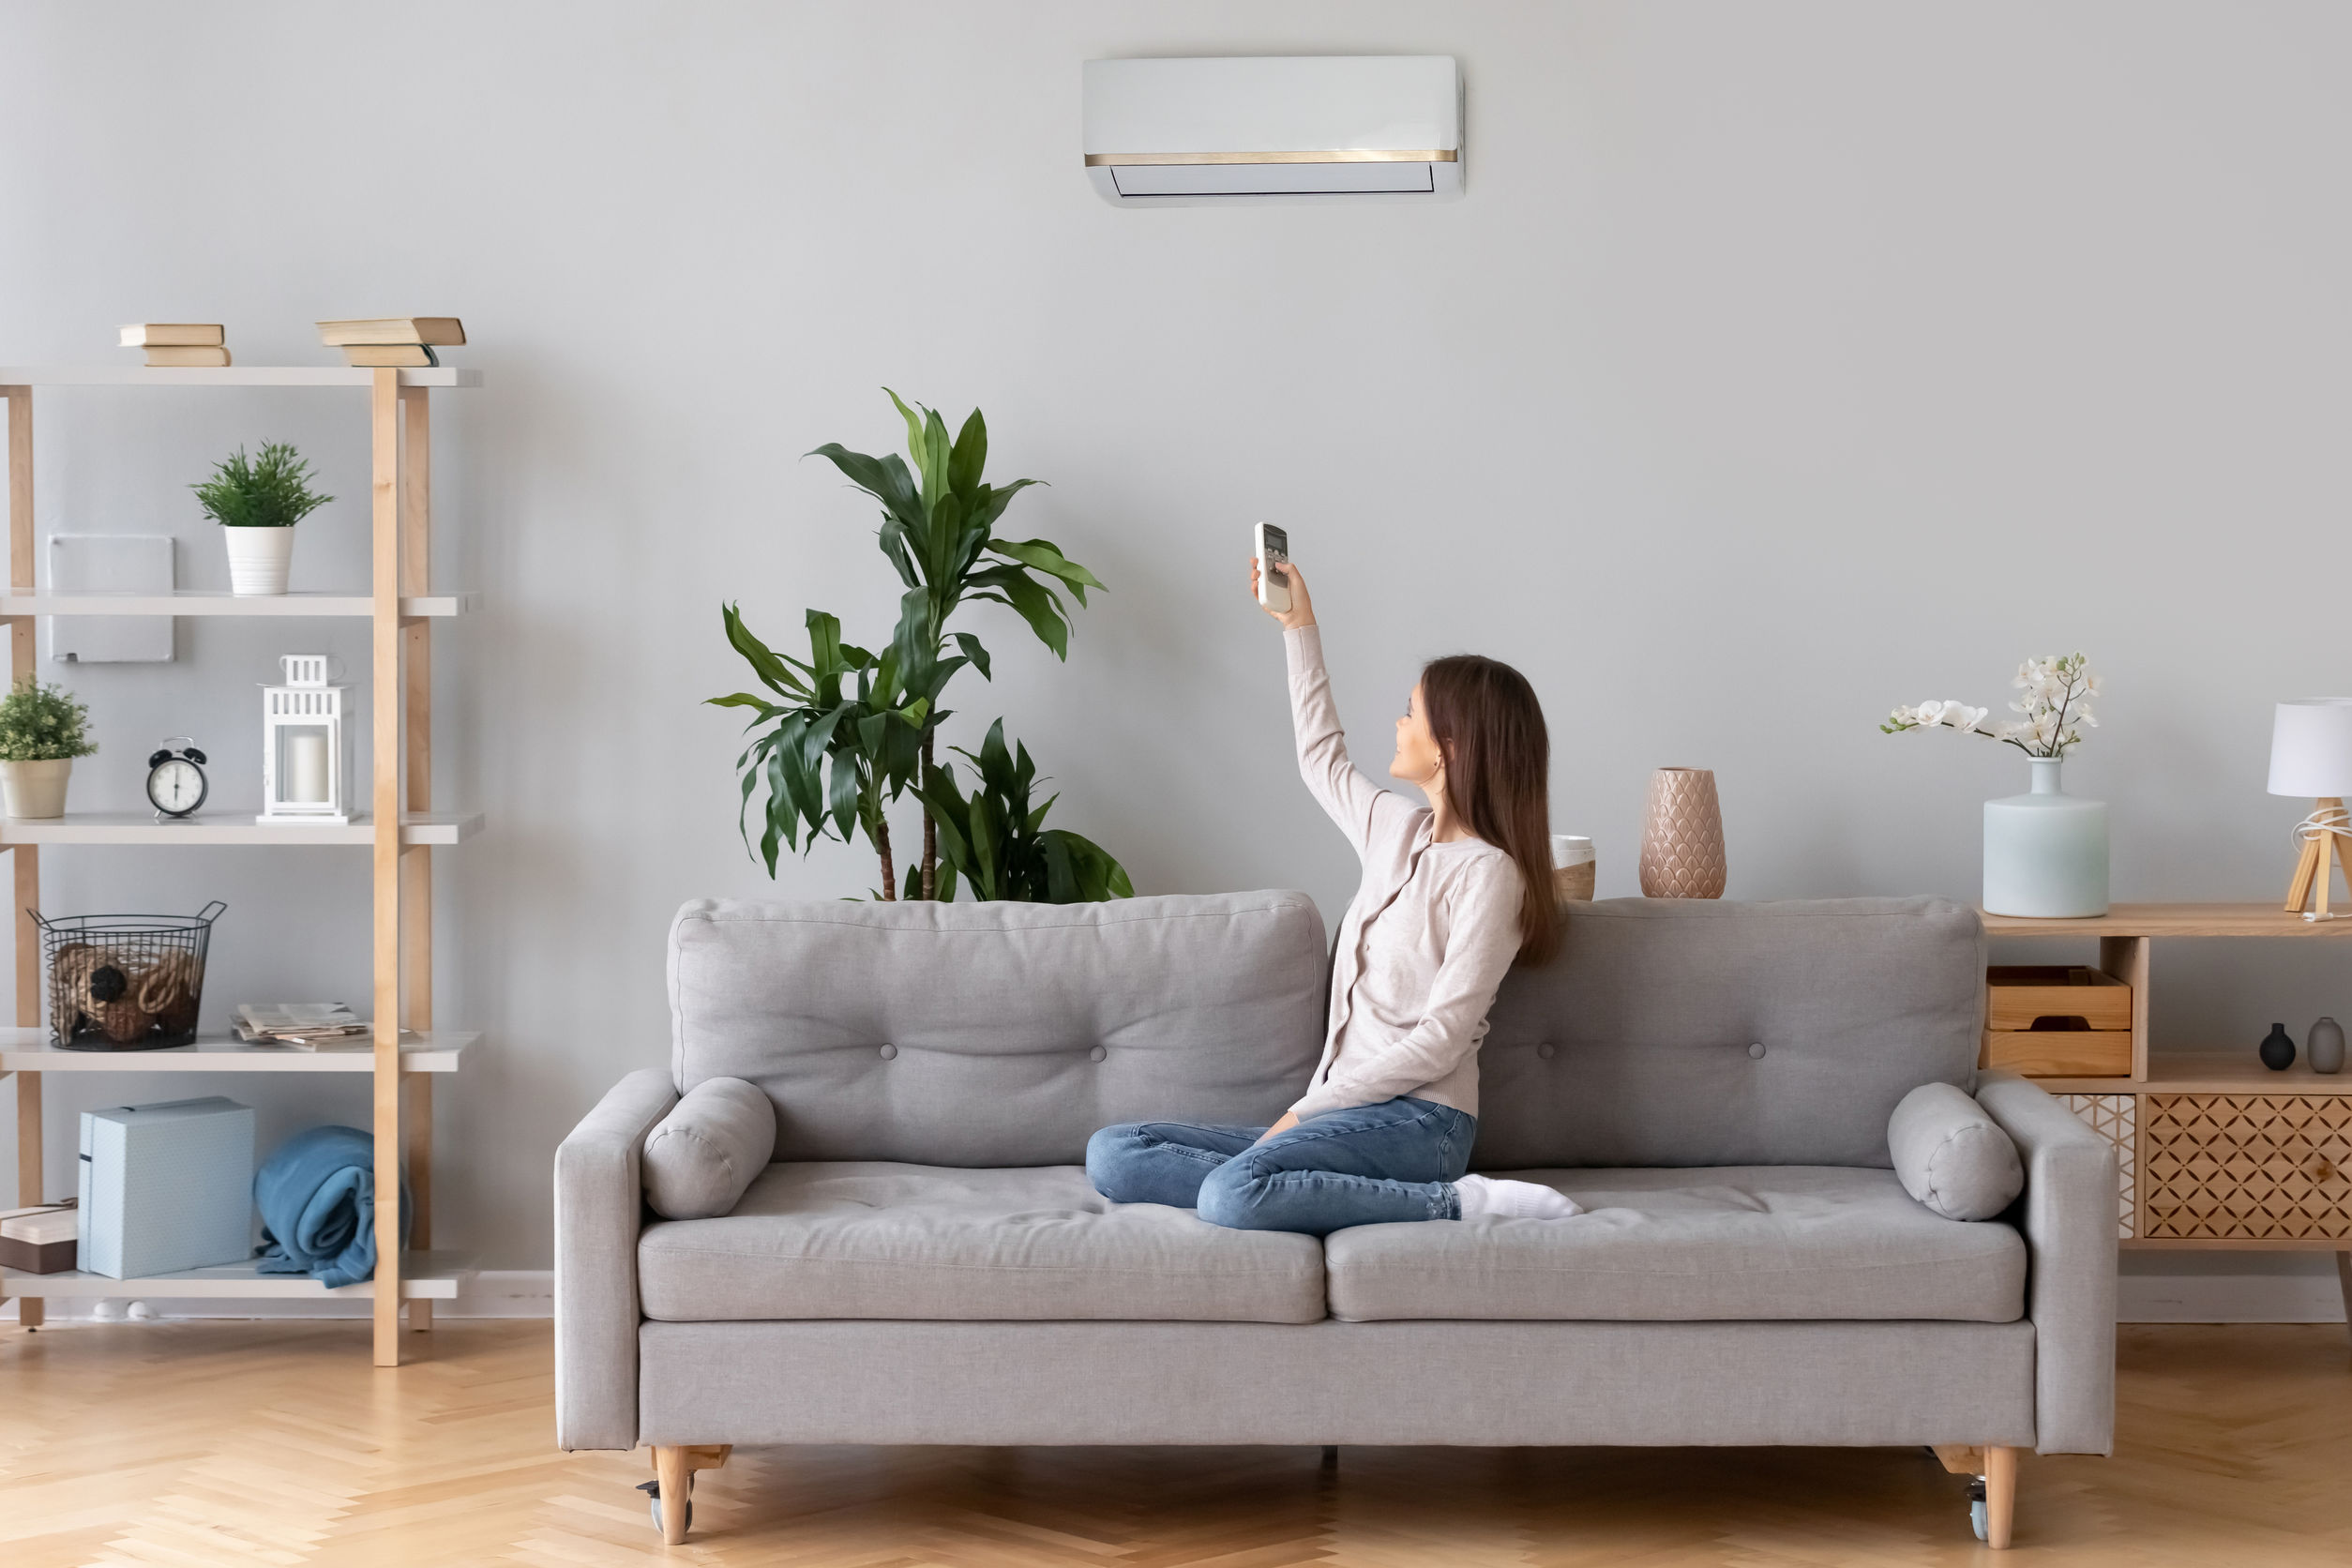 Young happy woman switching on air conditioner sitting on couch at convenient cozy home, lady relaxing on sofa in living room holding remote climate control to cooler system set comfort temperature